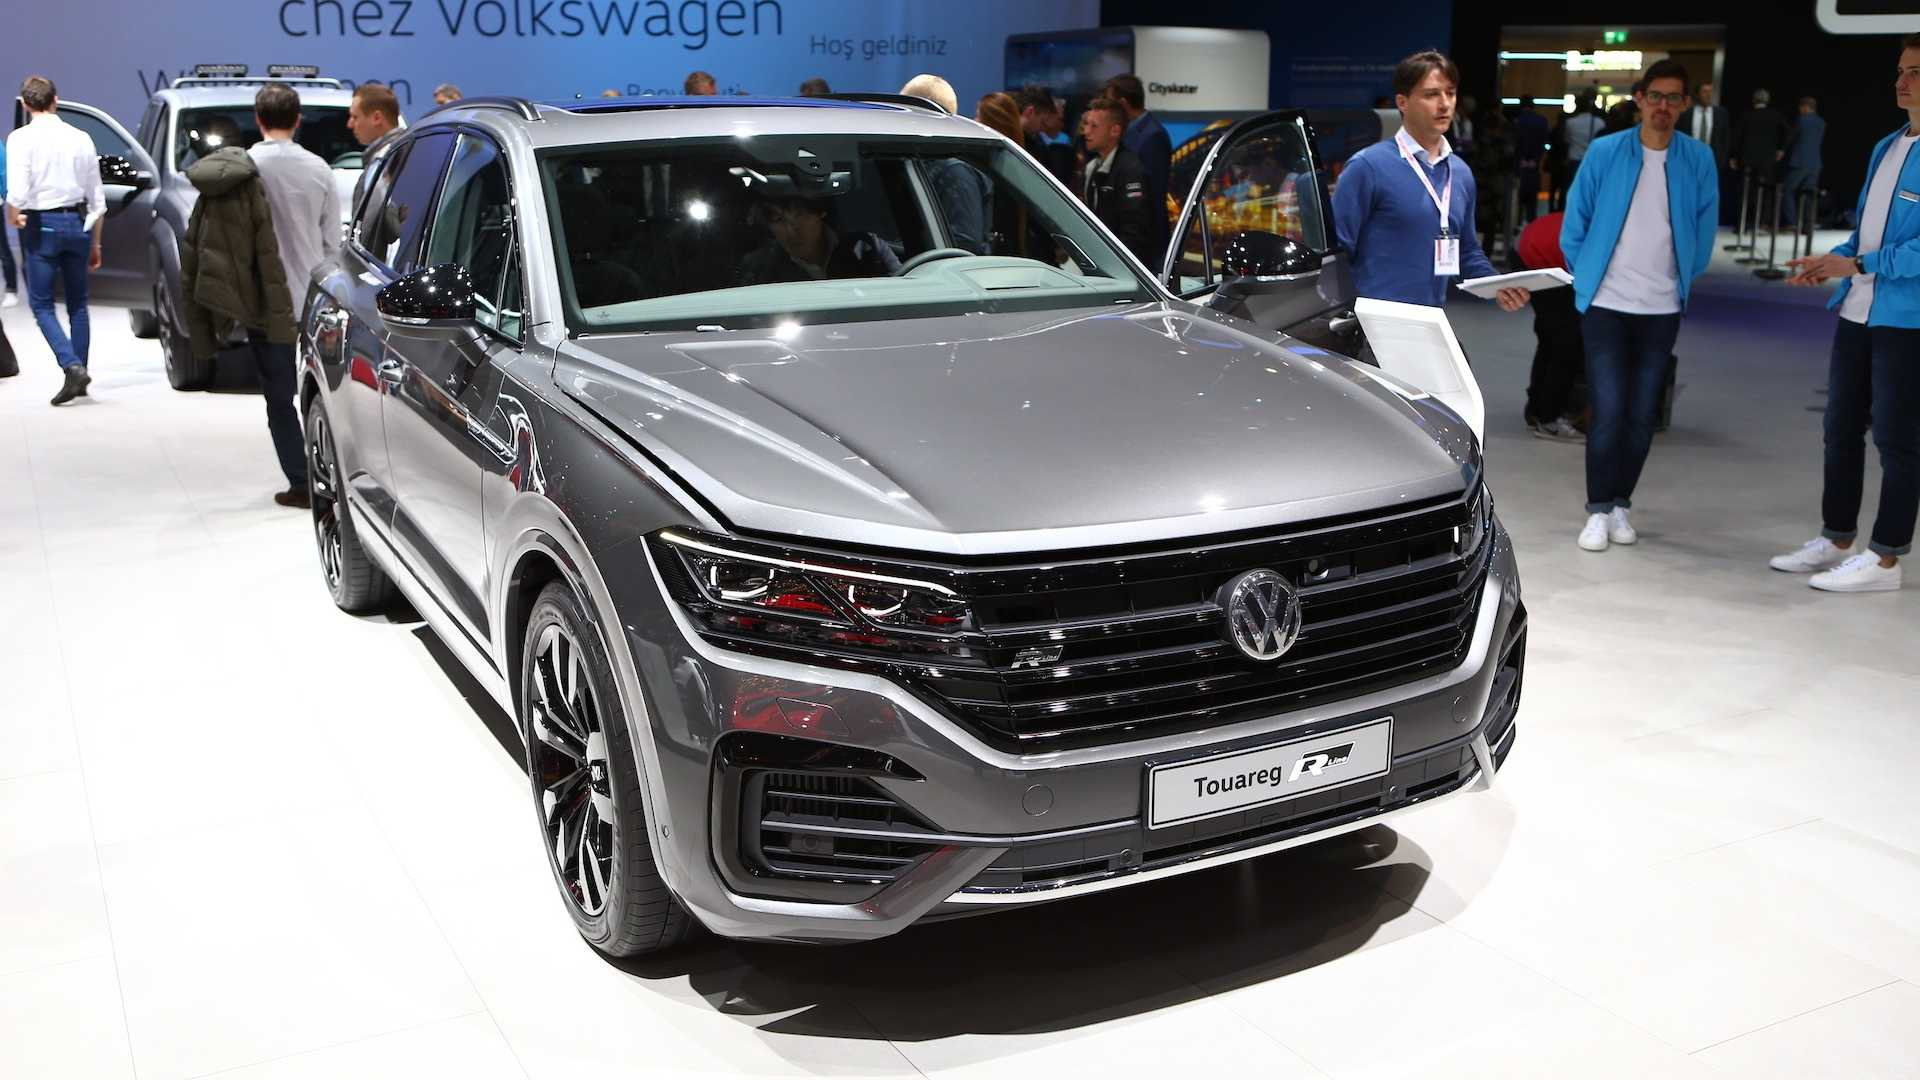 93 The Best 2020 Vw Touareg Tdi Exterior And Interior